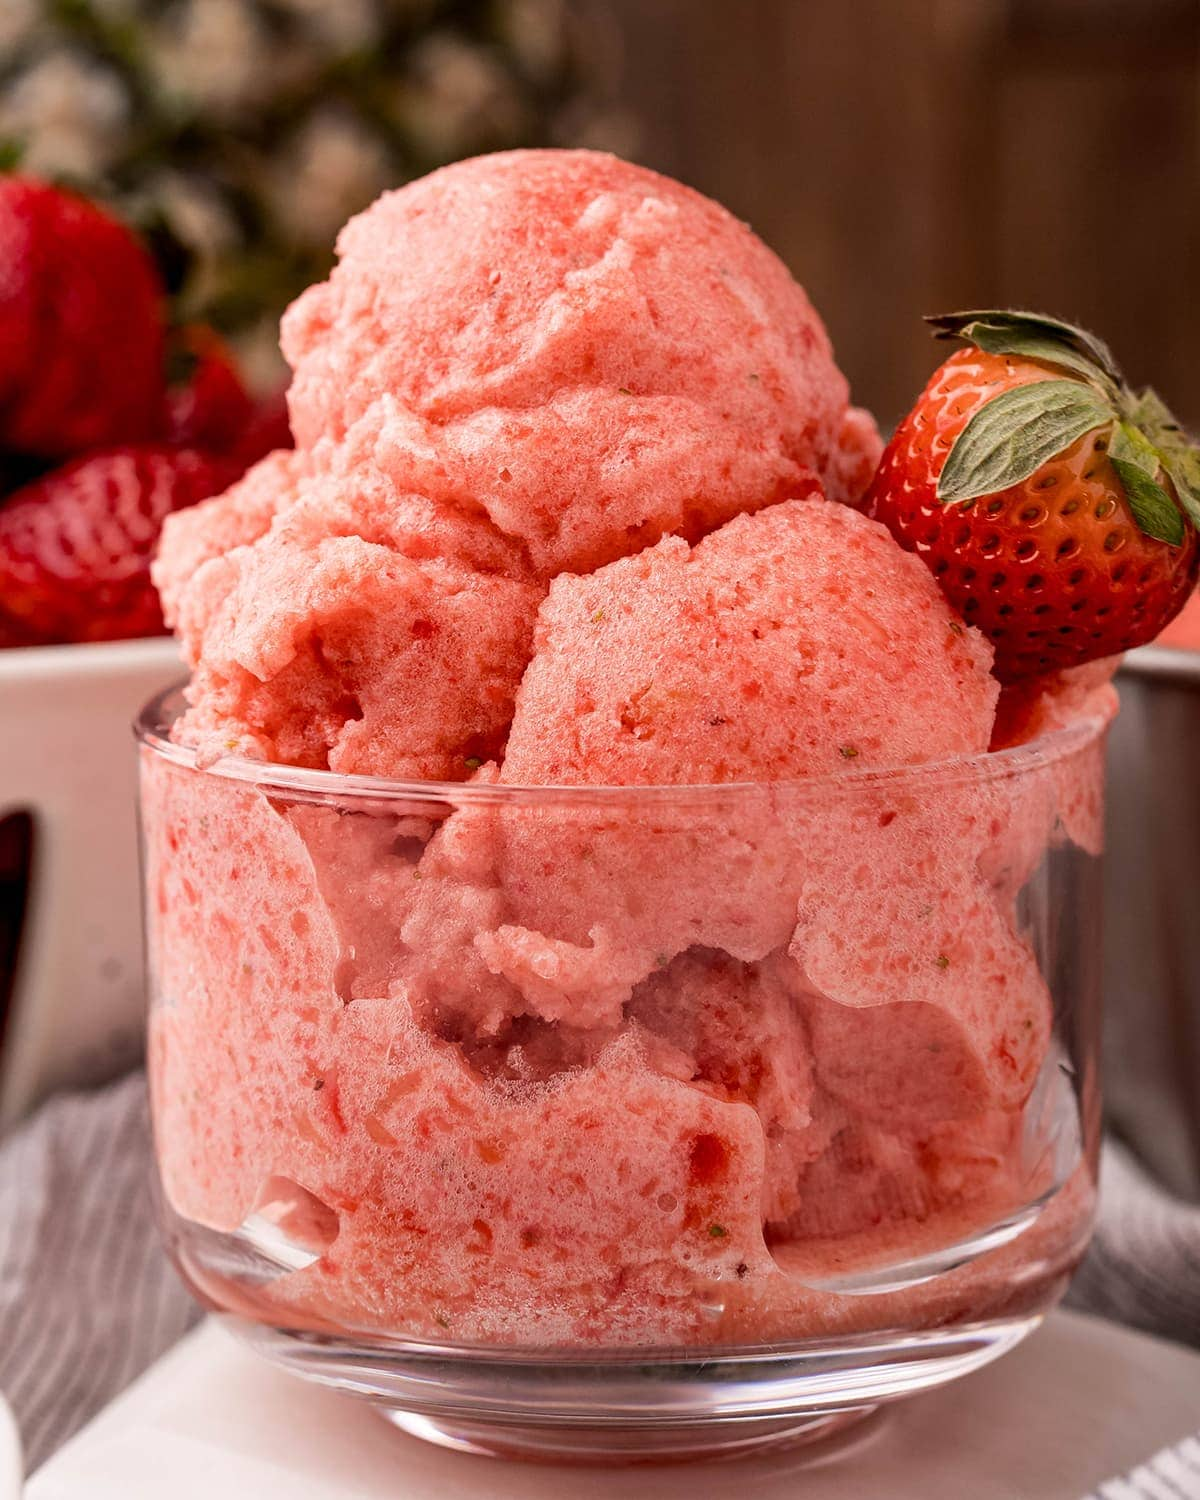 A clear glass bowl piled high with a pink strawberry pineapple sorbet, topped with a fresh strawberry.